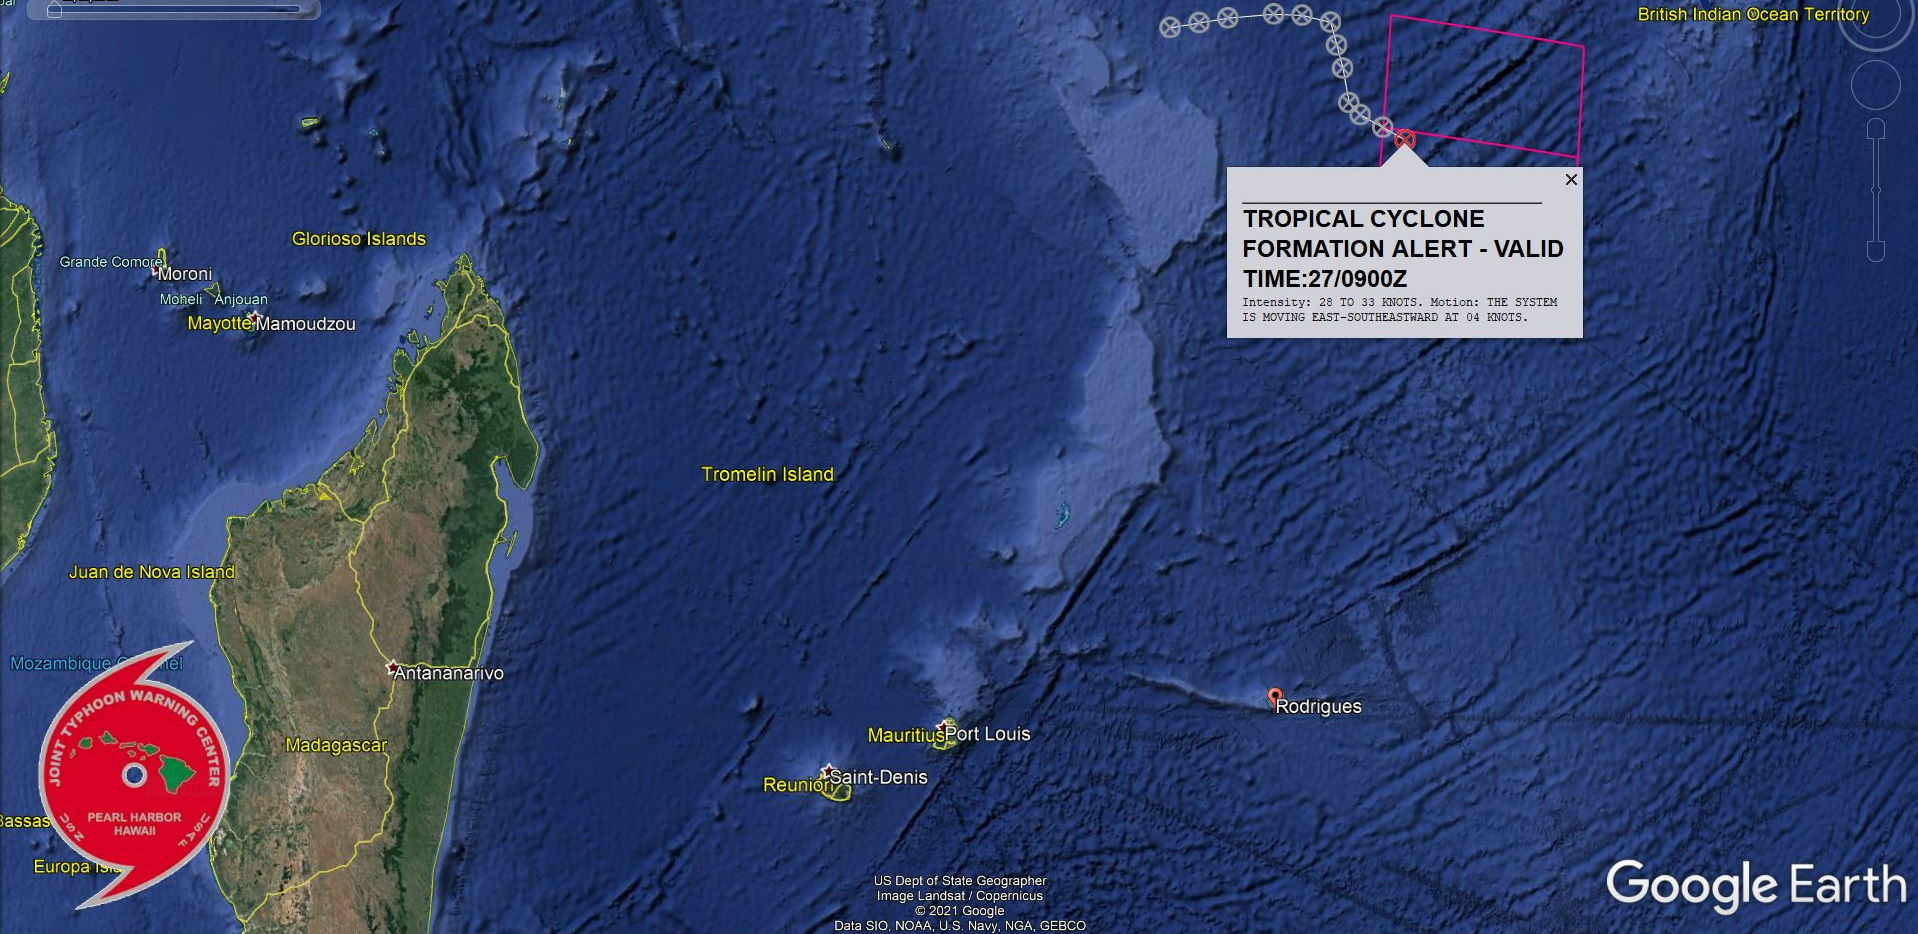 INVEST 98S. 27/09UTC. TCFA ISSUED: HIGH CHANCES OF REACHING 35KNOTS WITHIN 24HOURS.